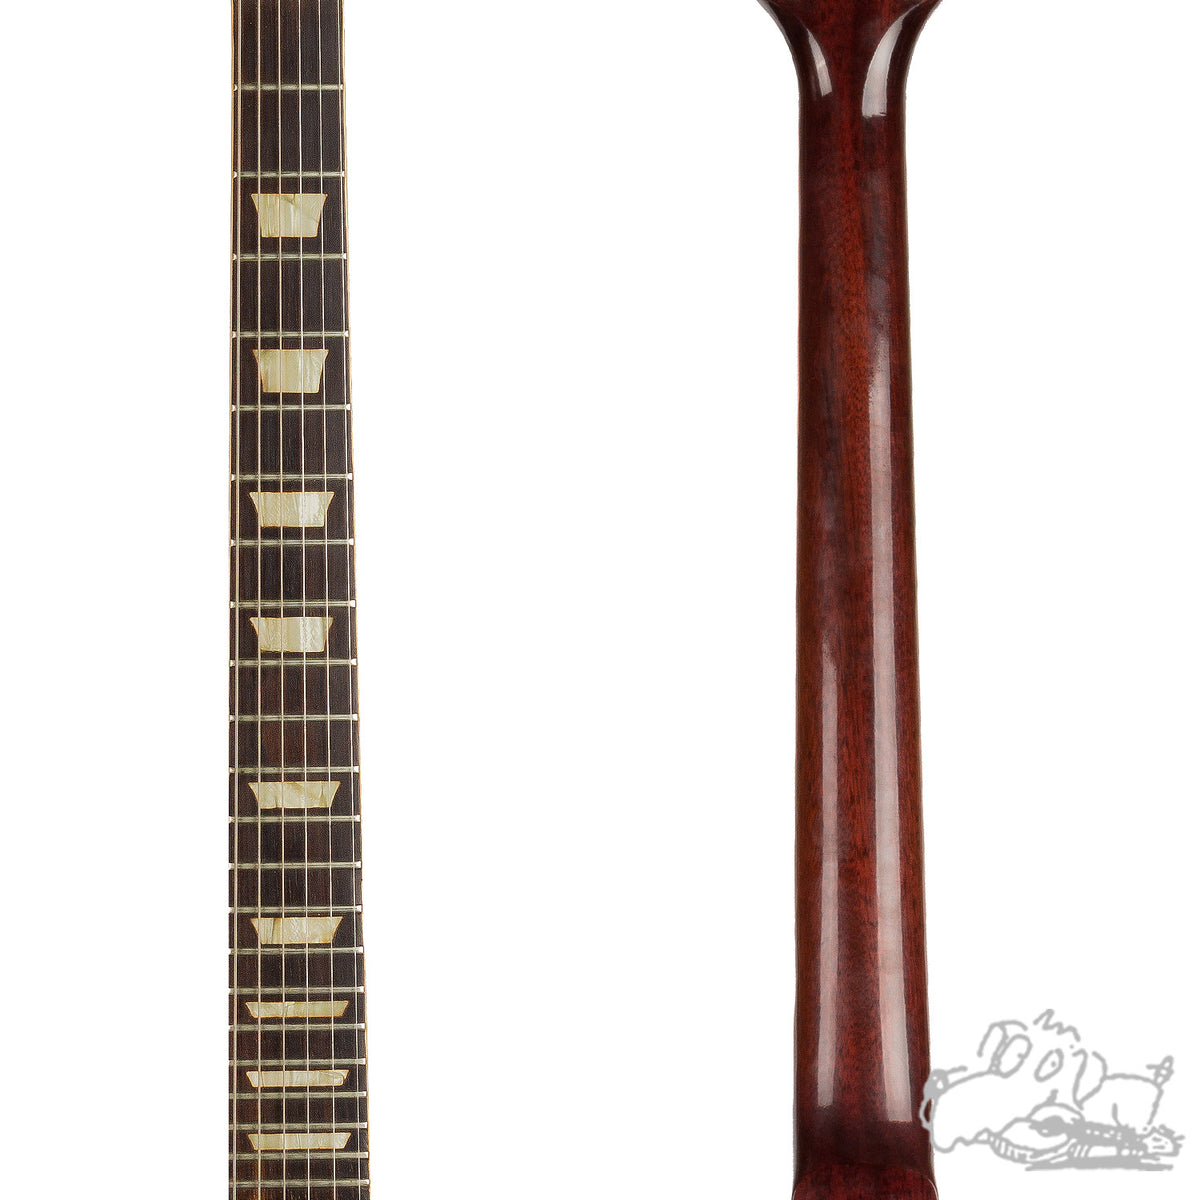 1961 Gibson Les Paul/SG Std.